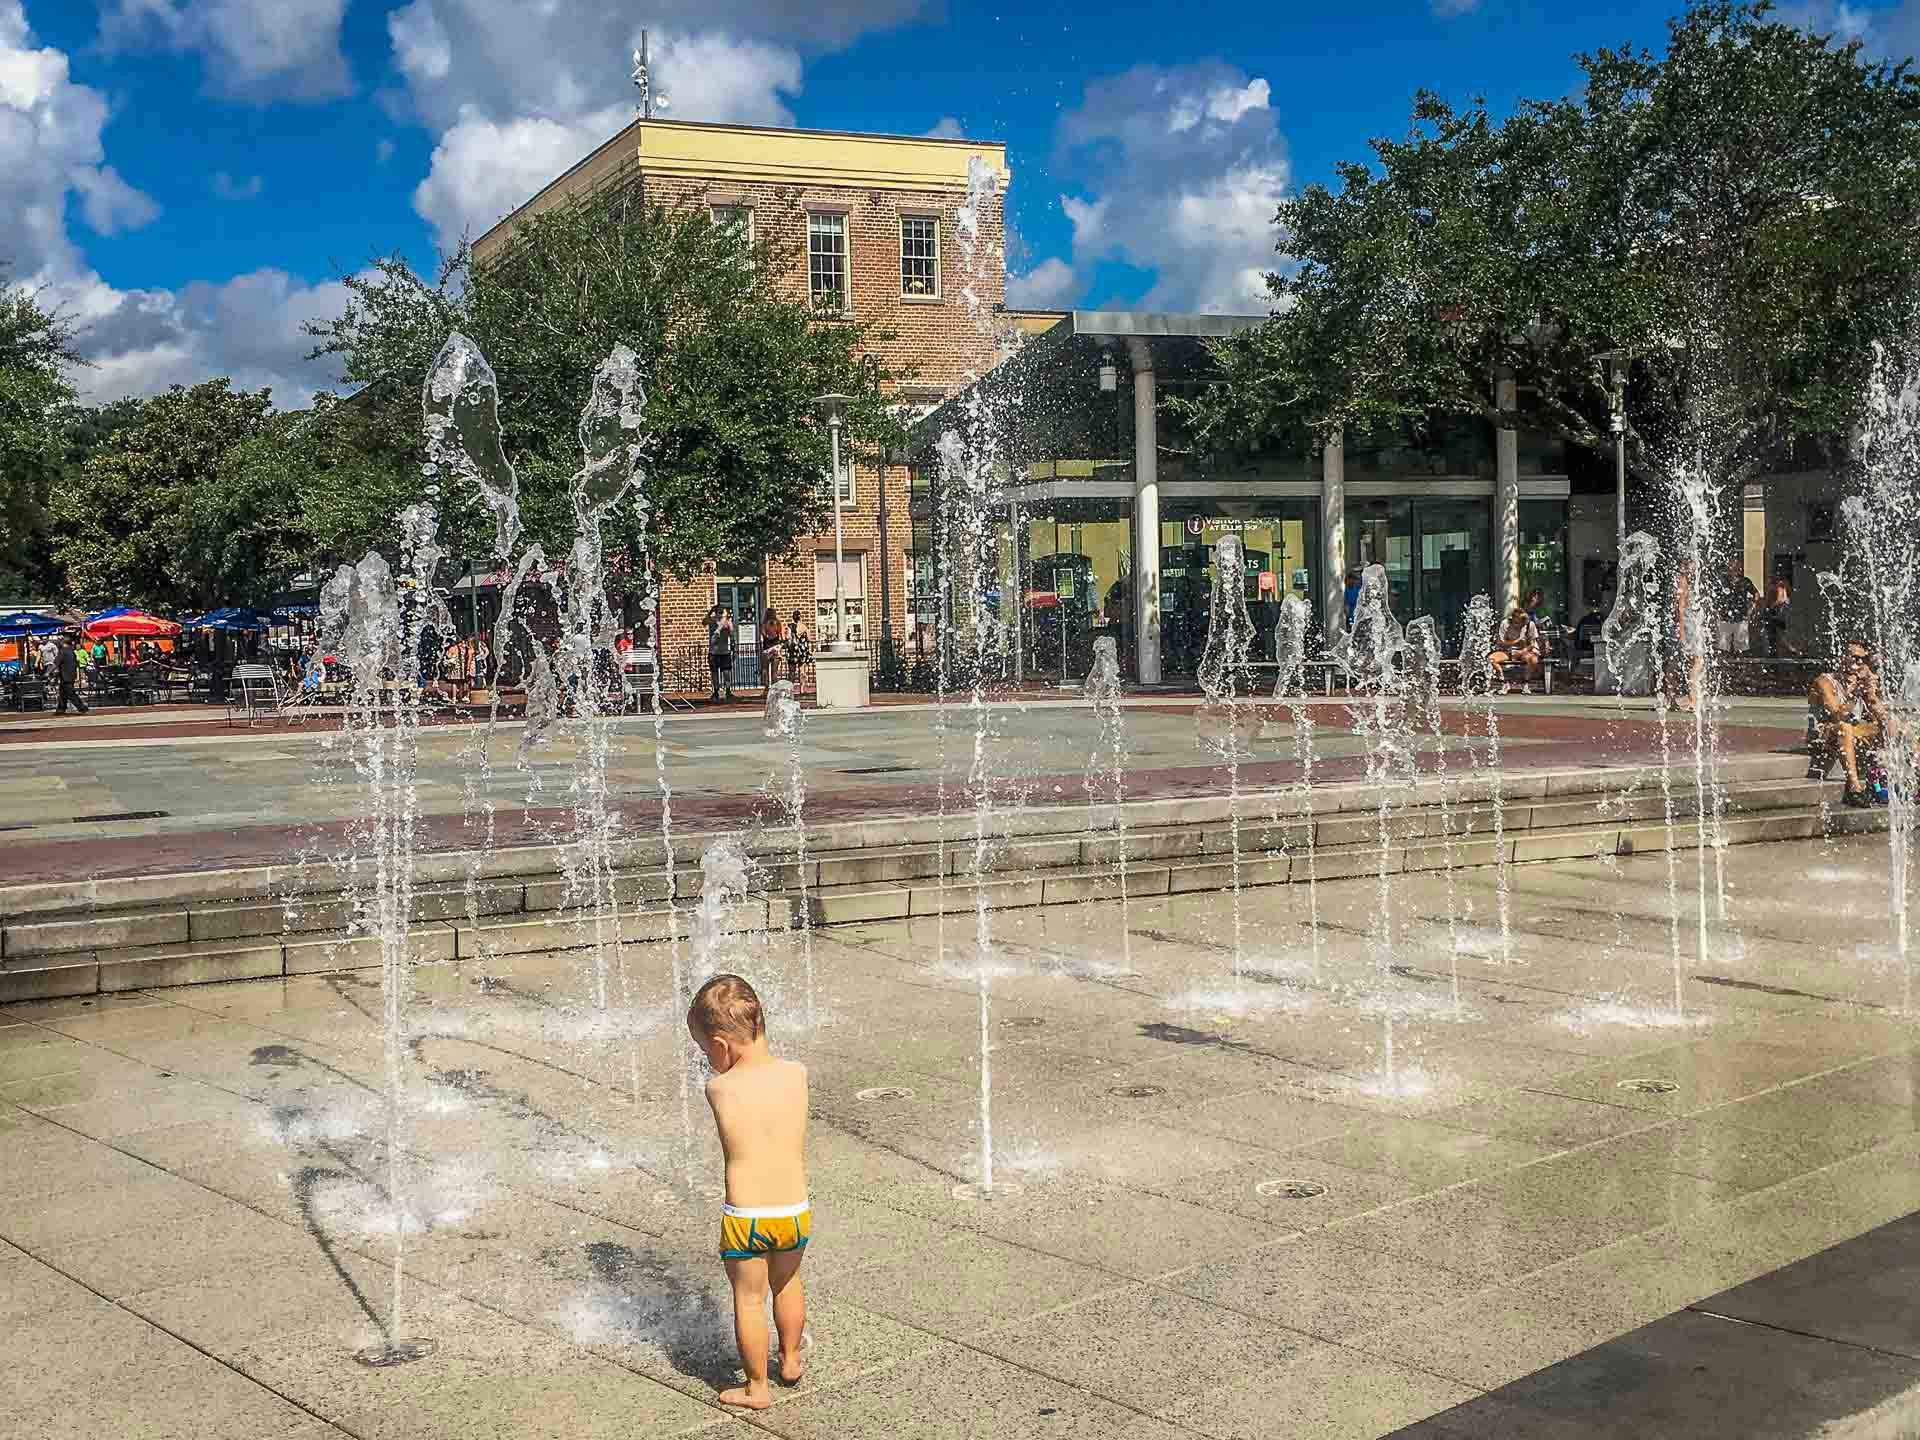 Family Can Travel - 2 Days in Savannah with Kids - Ellis Square Splash Park